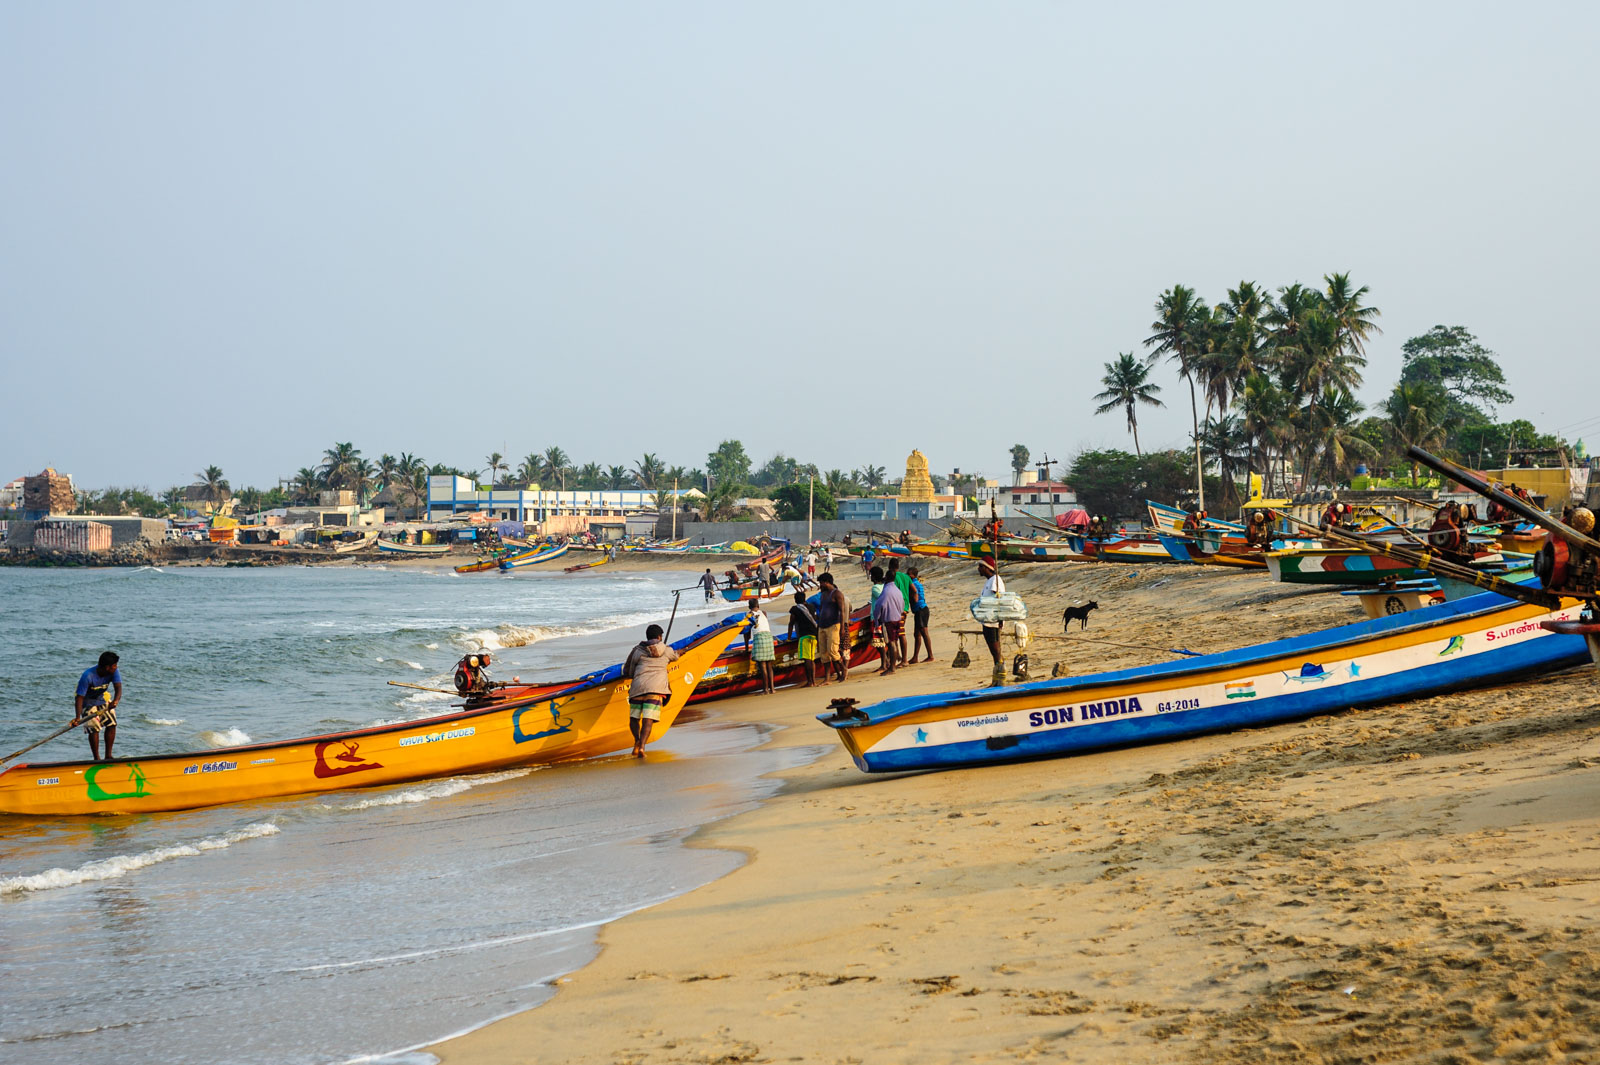 Fishermen at Chengalpattu, India